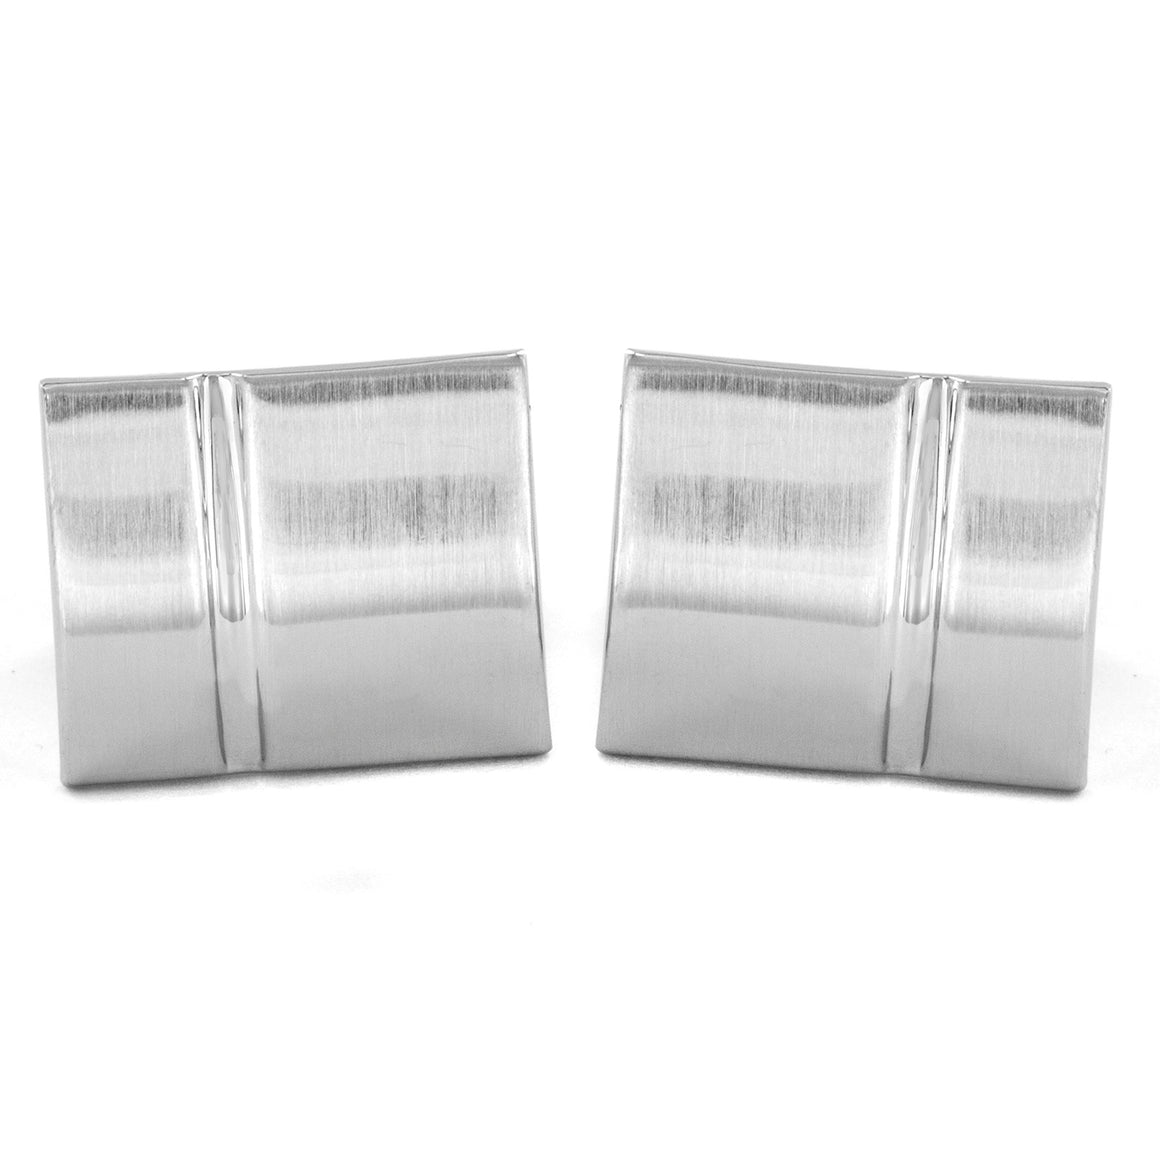 Men's Brushed and Polished Grooved Rectangle Cuff Links